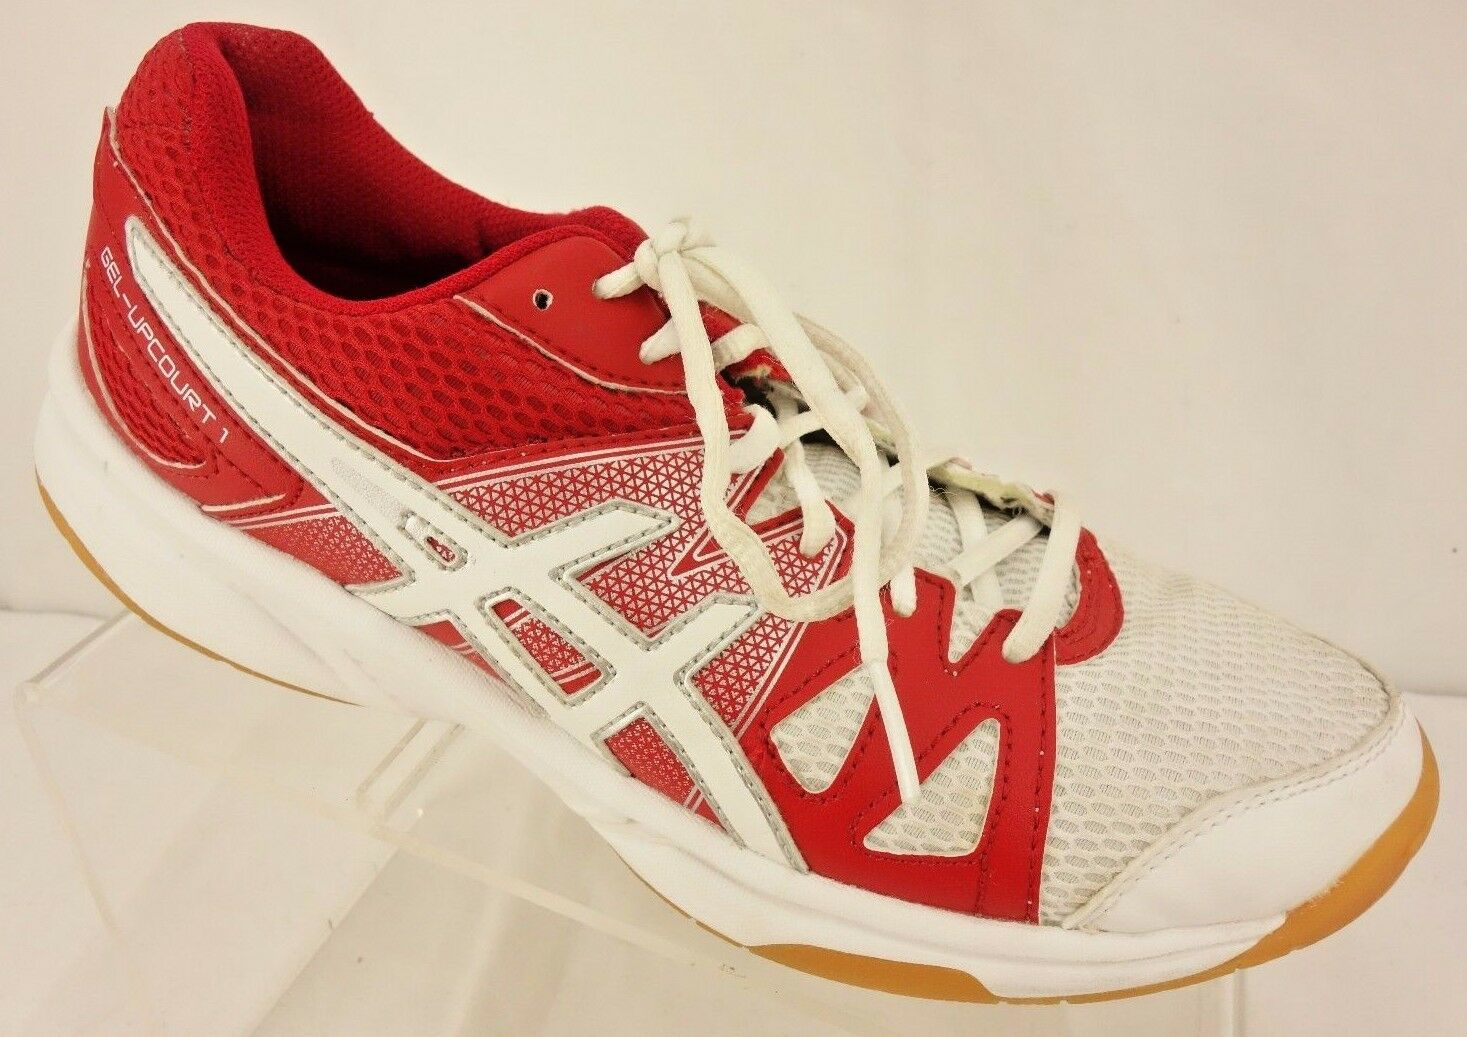 ASICS 'Gel-Upcourt 1' Red & White Mesh Lace Up Athletic Sneaker Women's 7.5 M